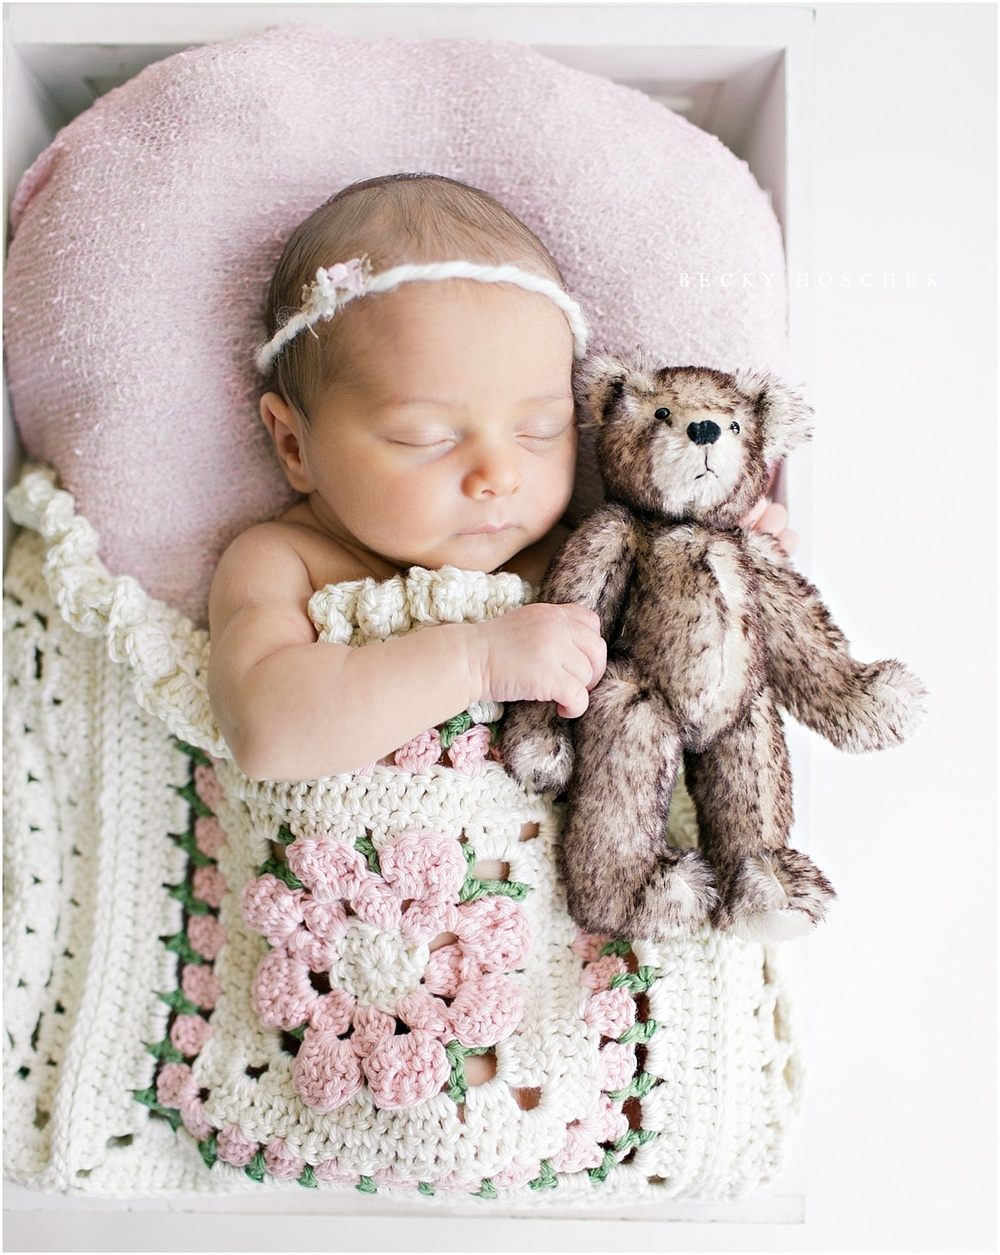 adorable newborn girl lying under pink and cream knit blanket while snuggling with tiny teddy bear